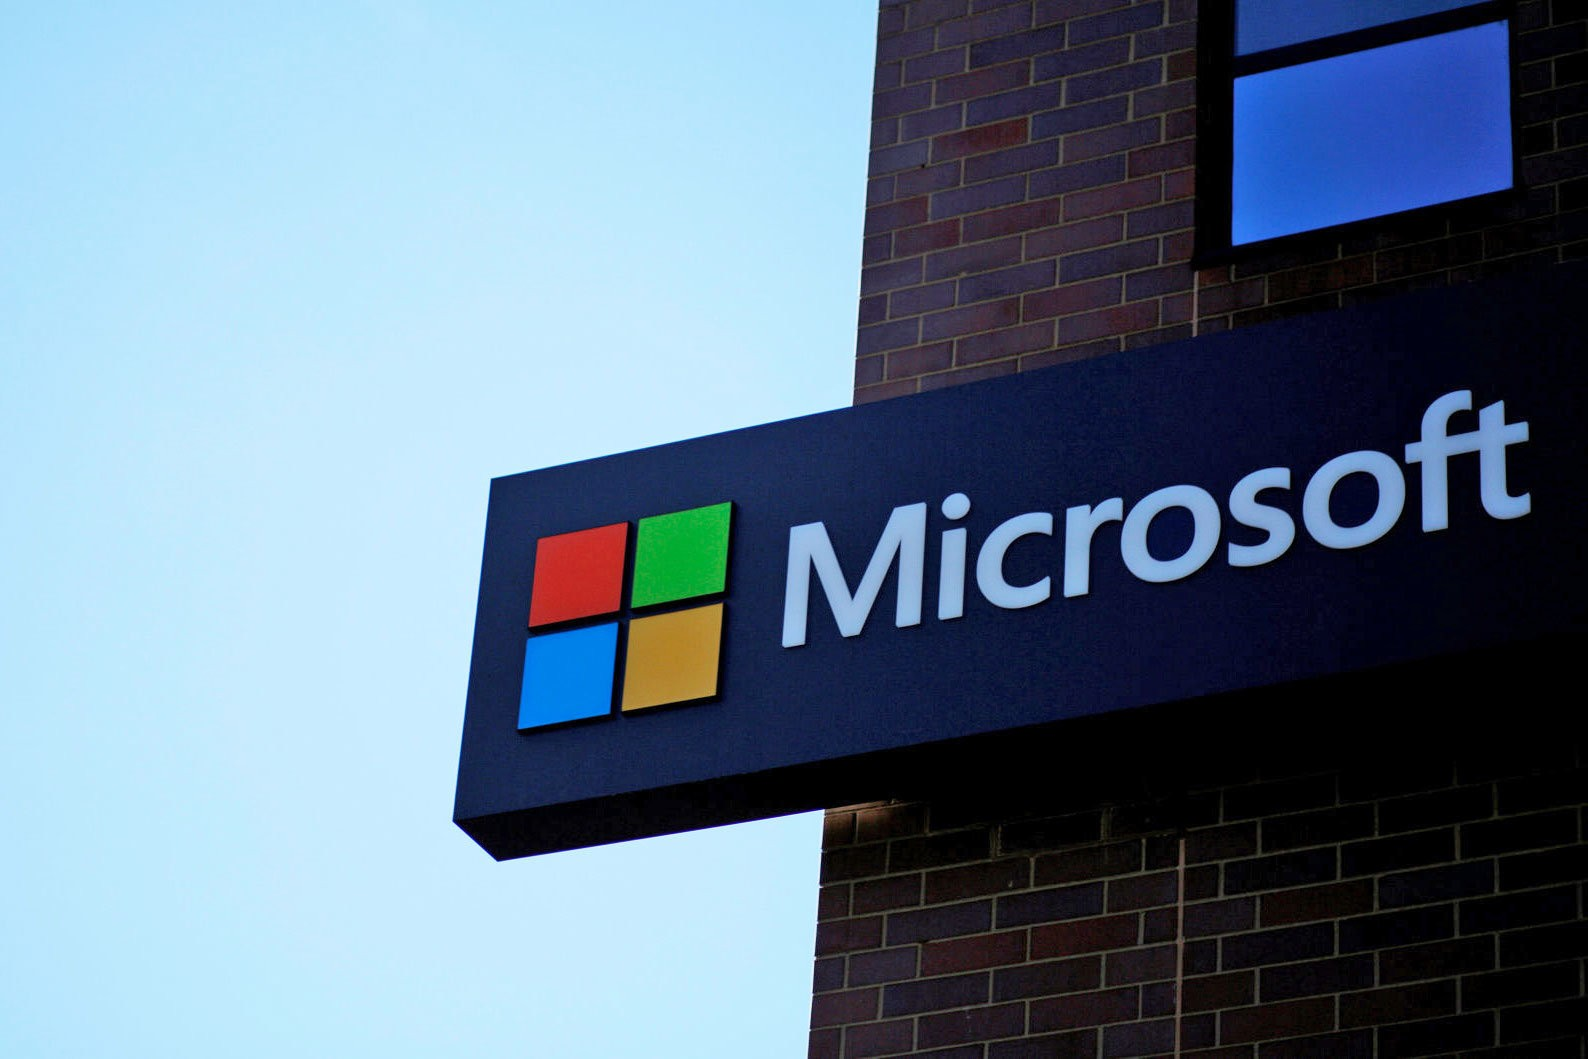 Microsoft reveals that hackers had access to some Outlook email accounts